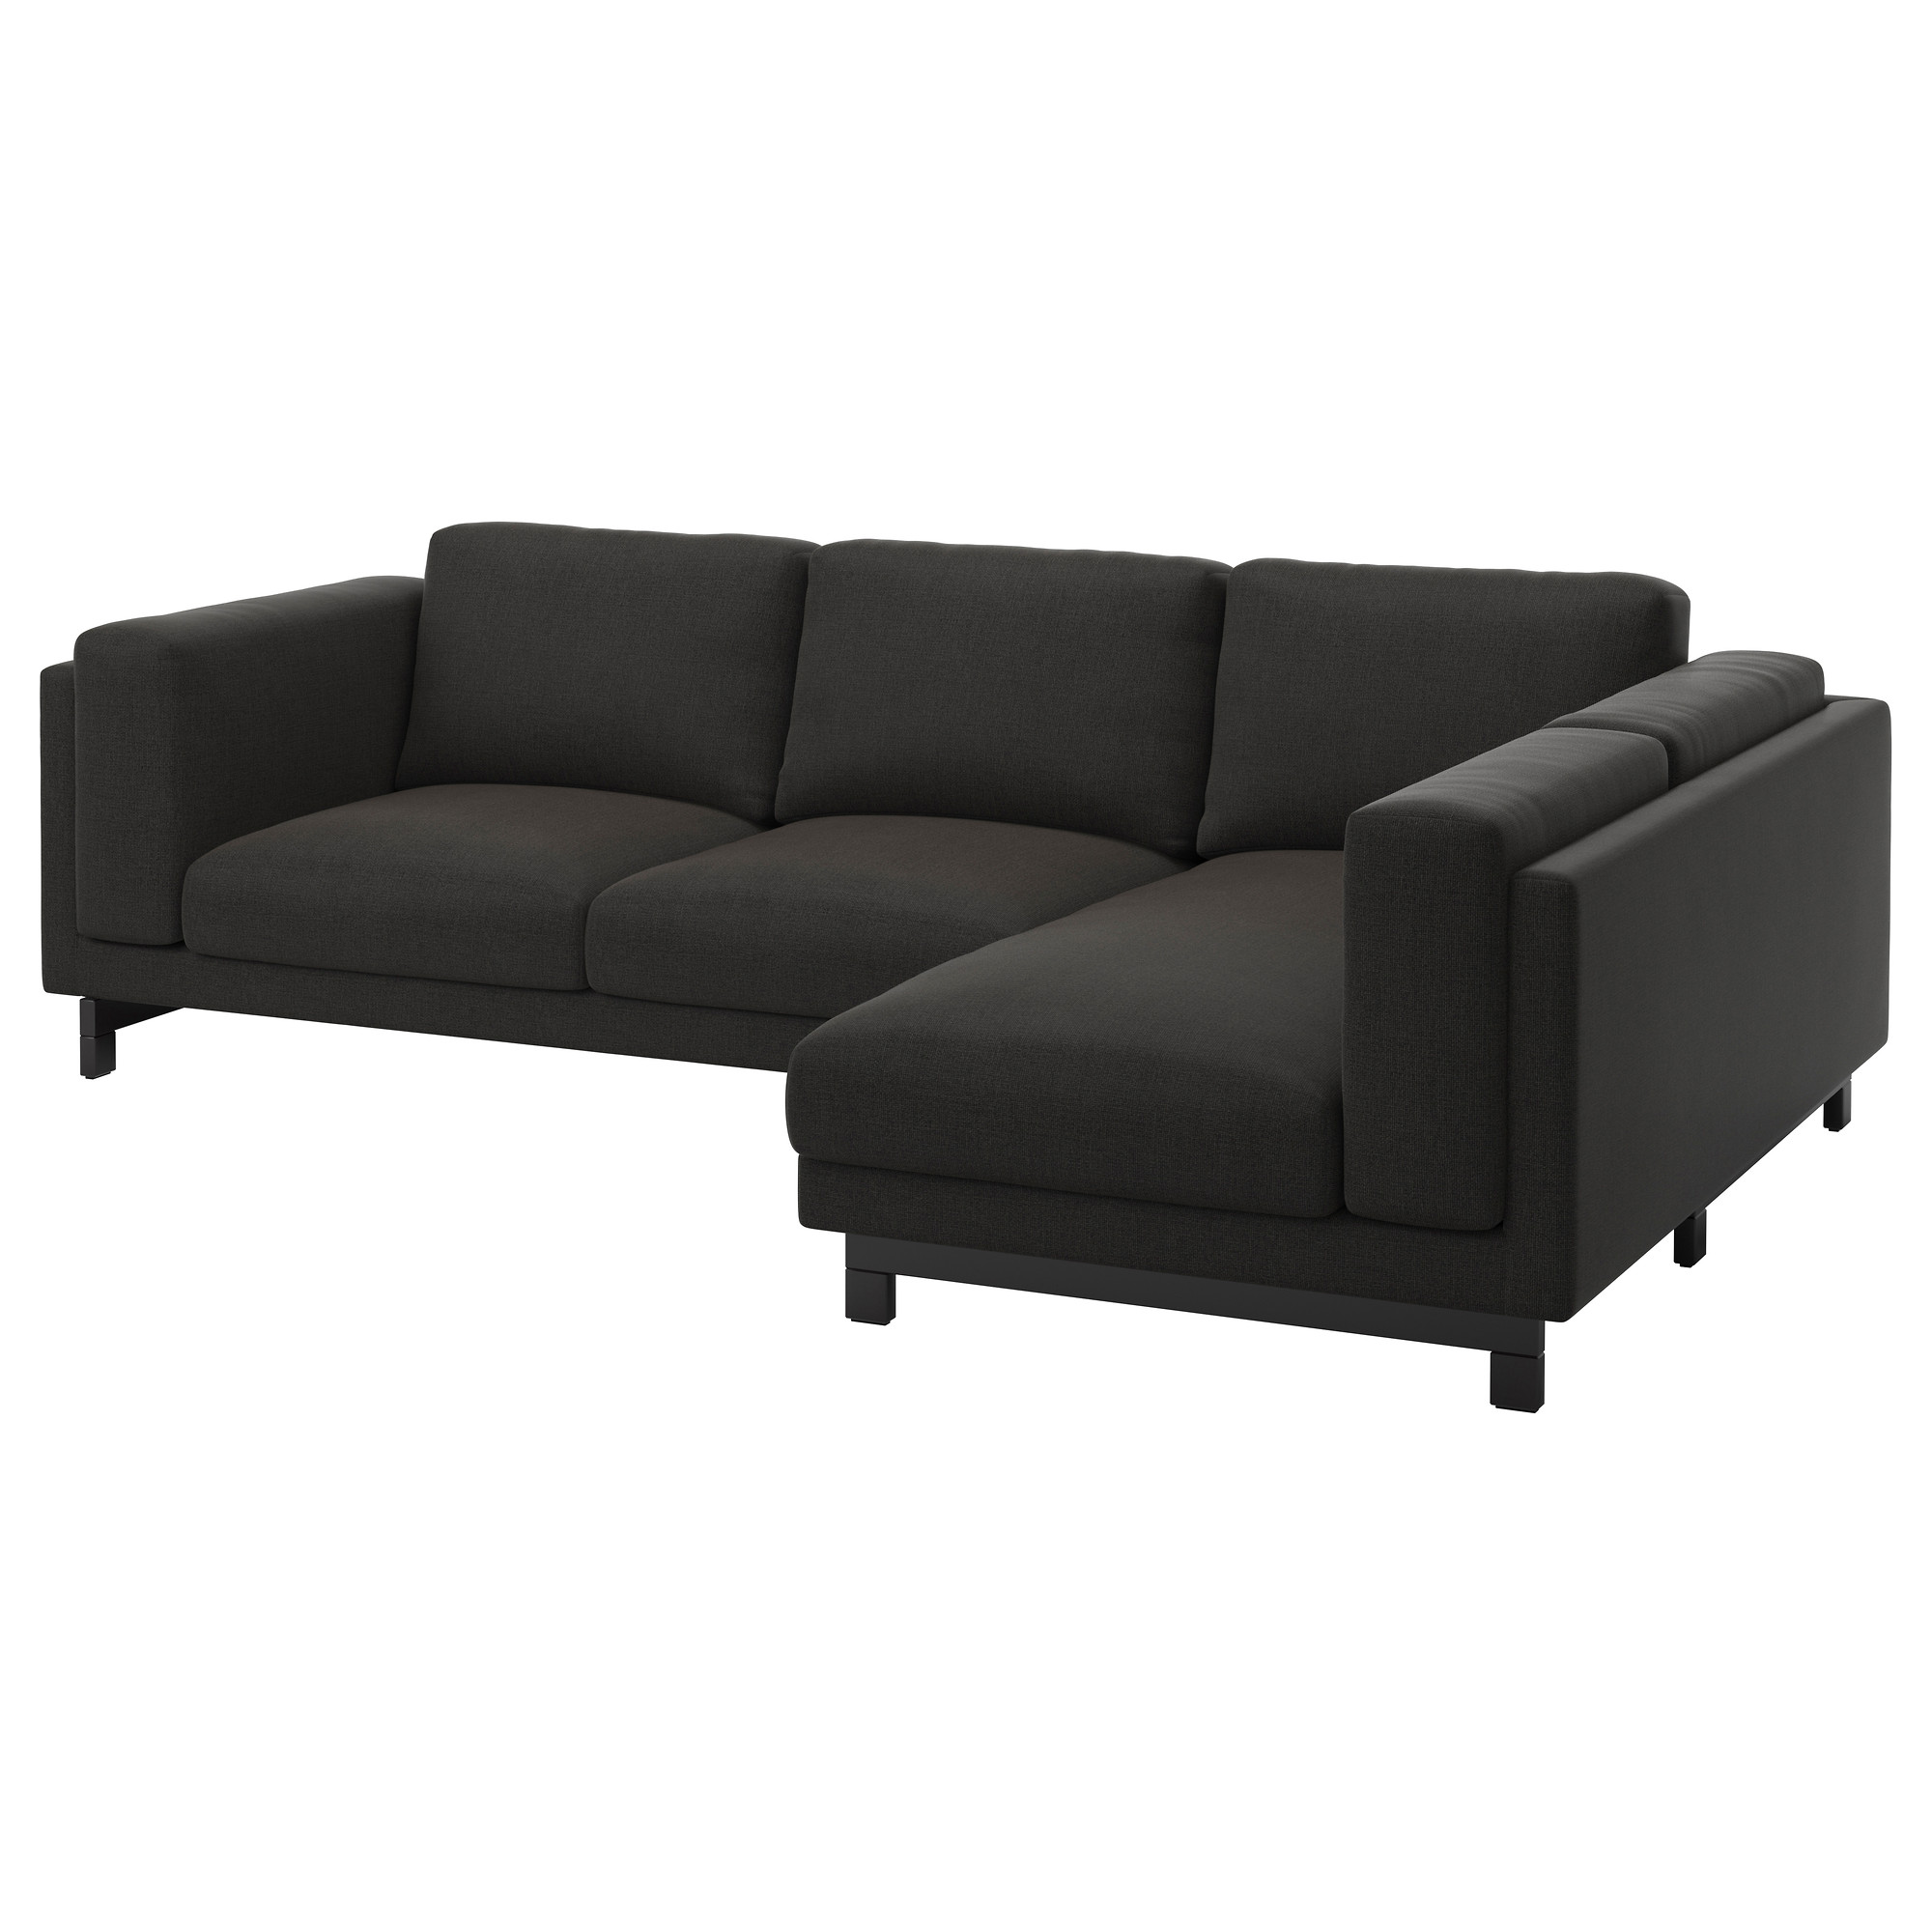 NOCKEBY Sofa right Tenö dark gray with chaise wood IKEA